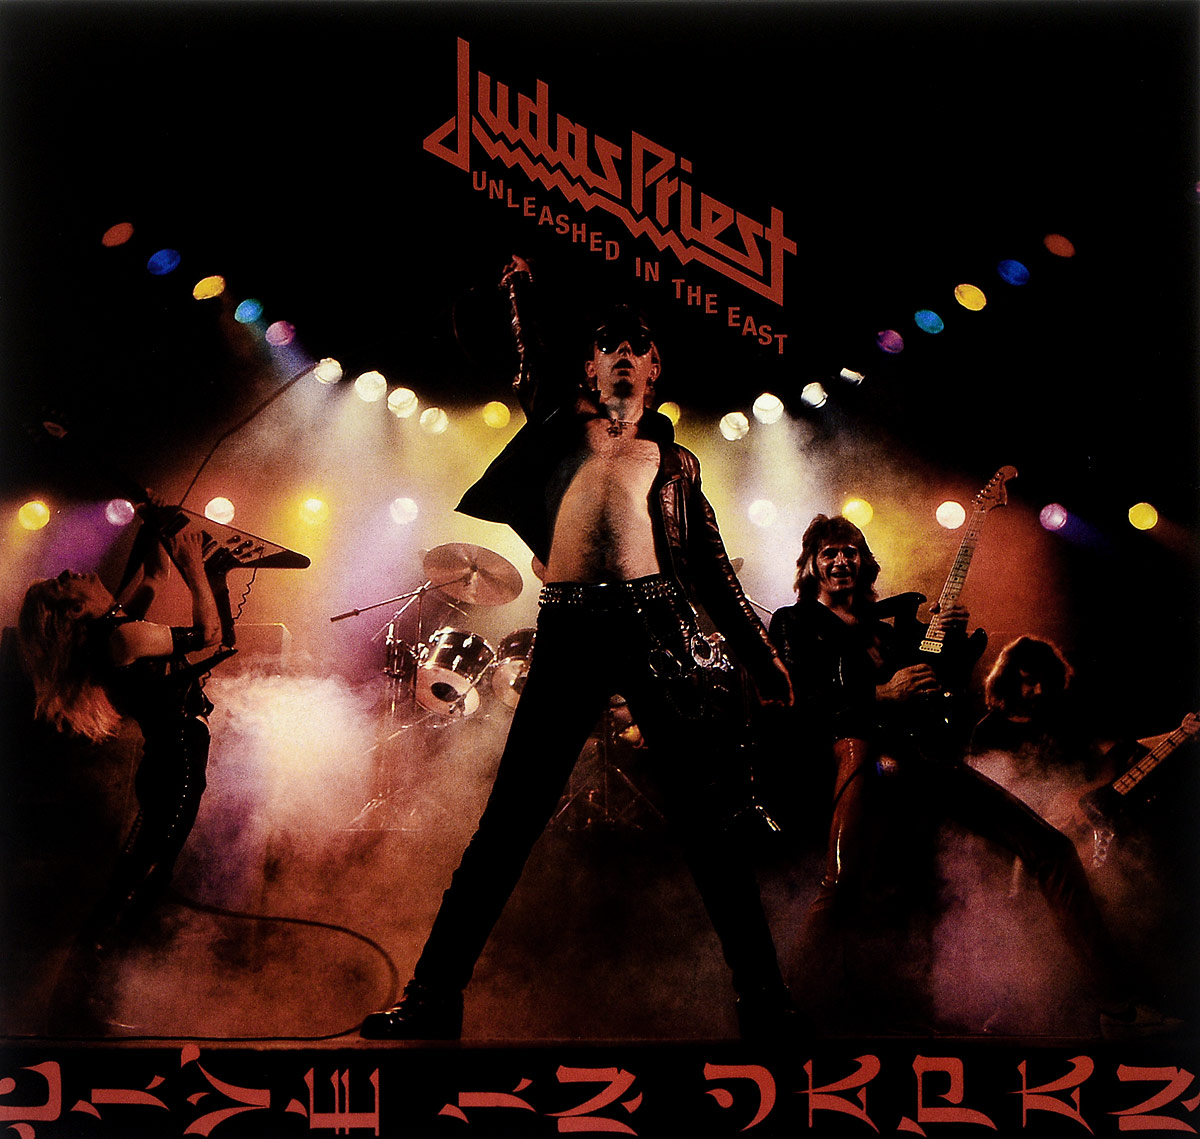 Judas Priest Judas Priest. Unleashed In The East (LP) fitness unleashed